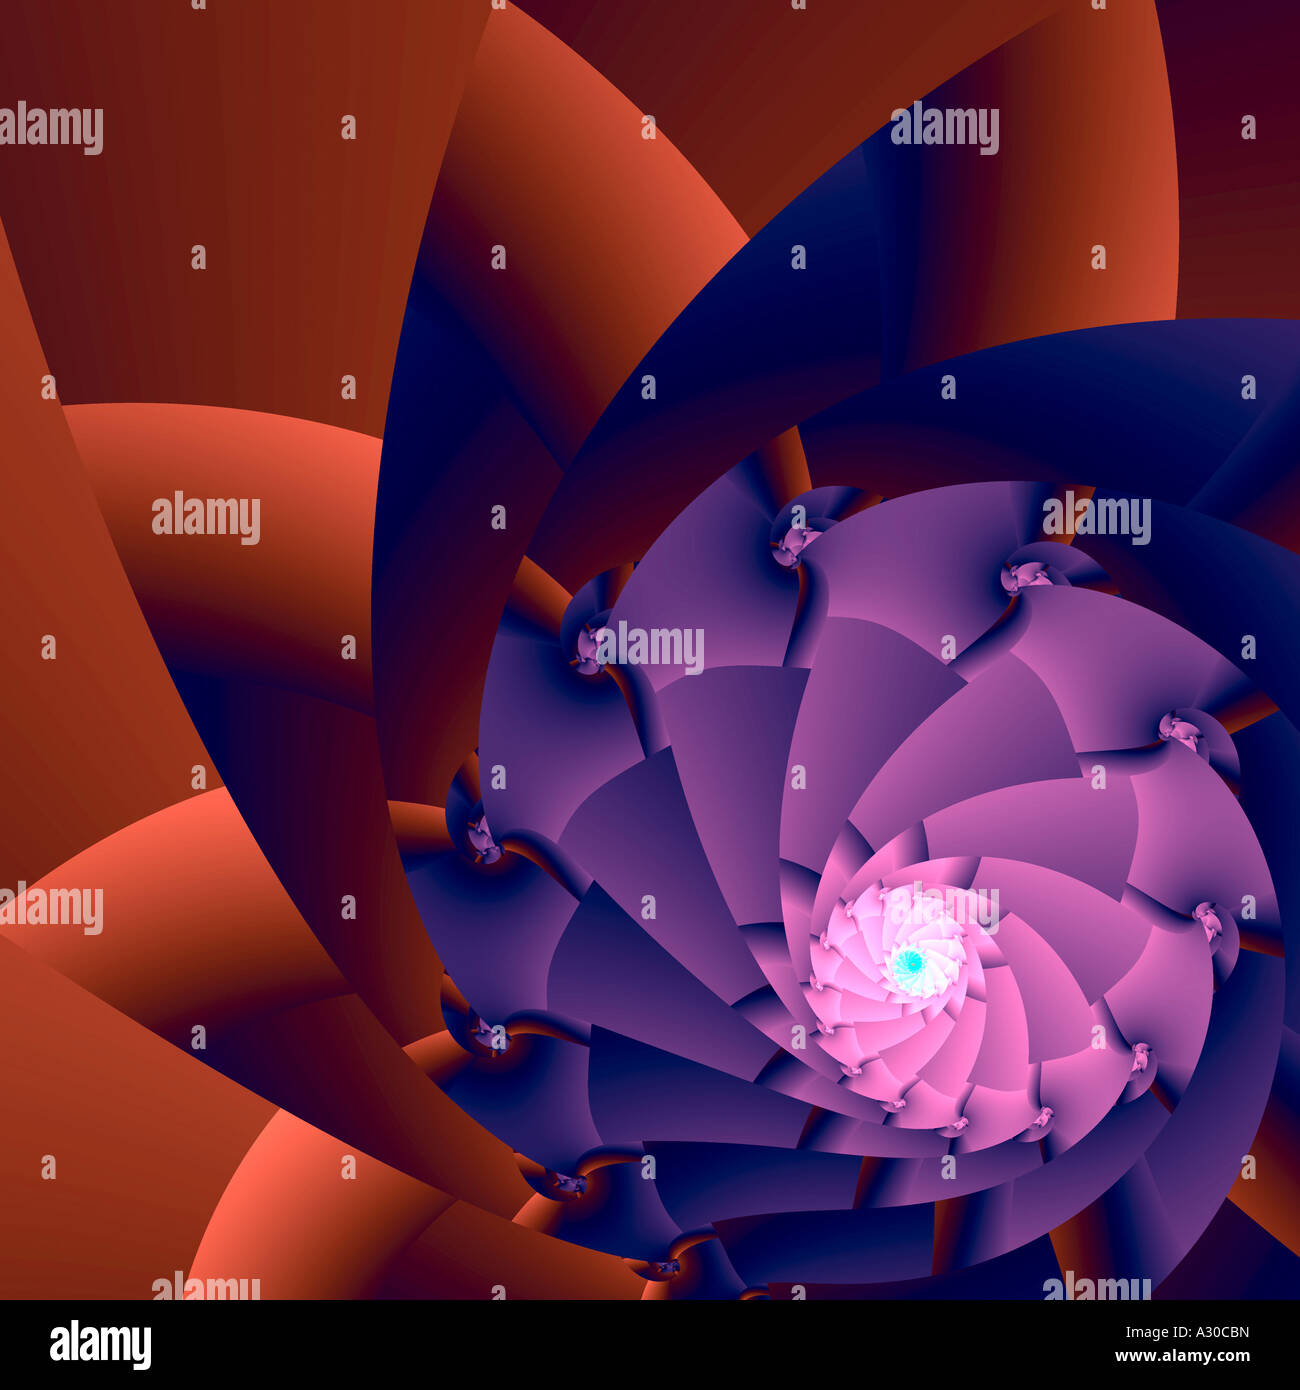 Computer generated fractal image architecture botanical complex eccentric diaphragm graphic illusion repeat - Stock Image